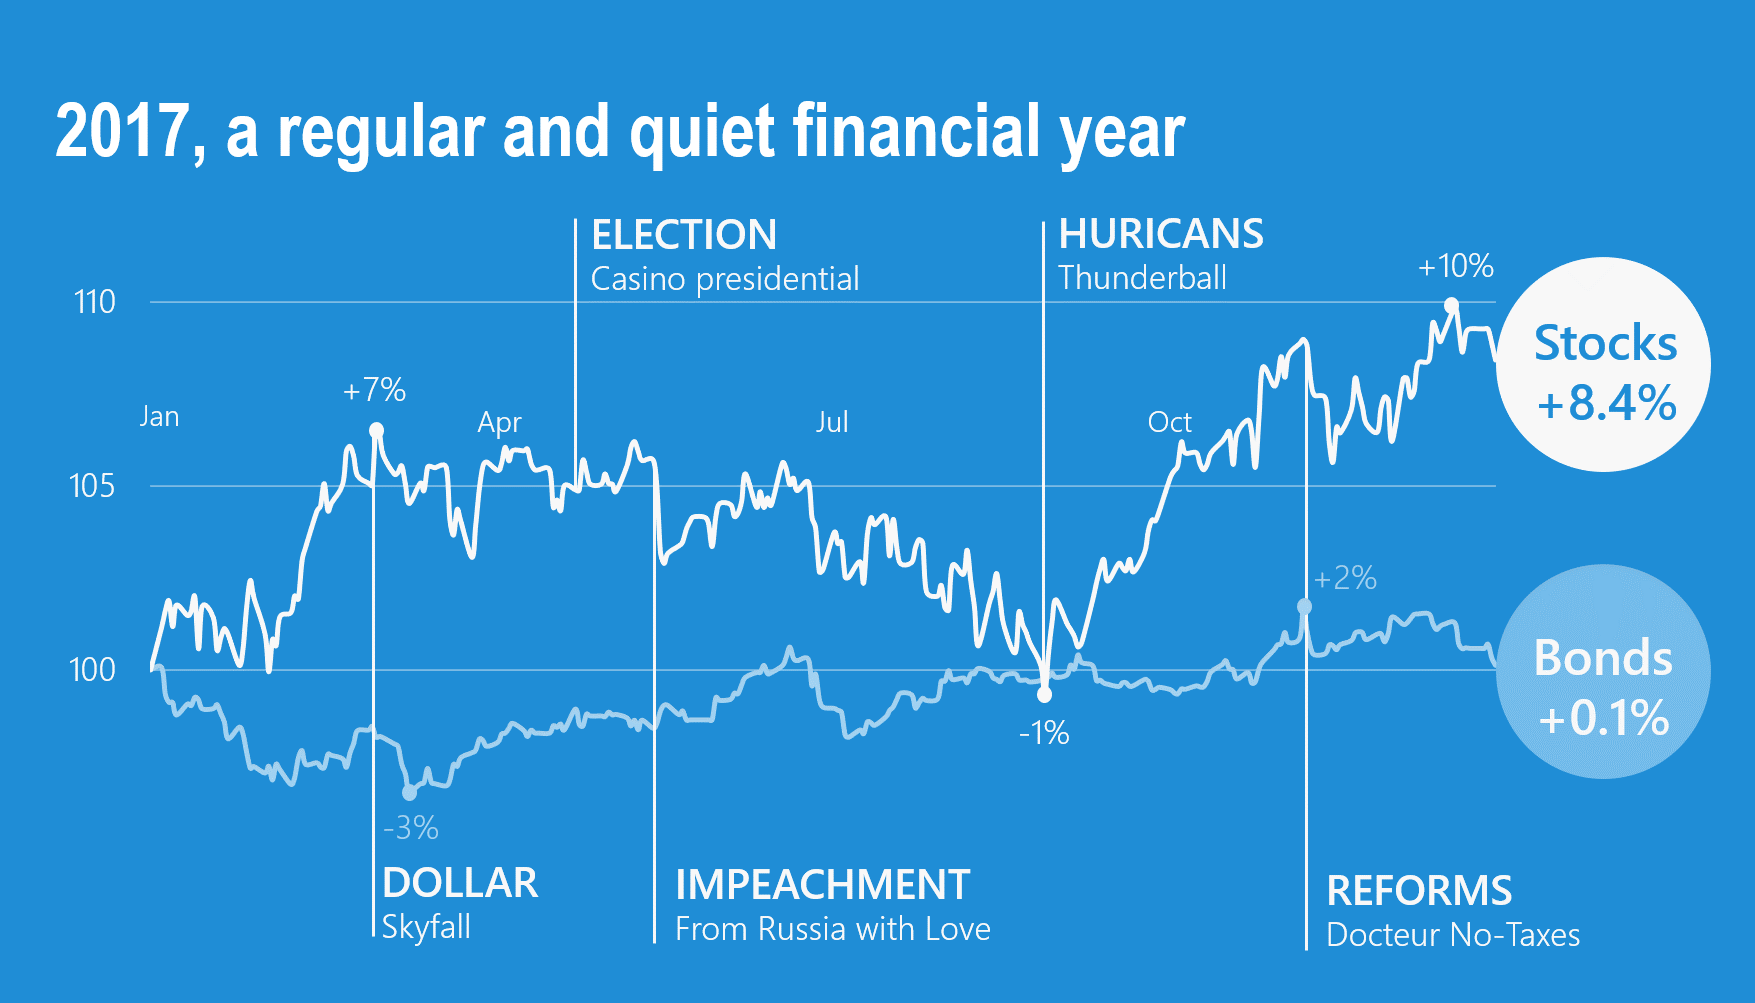 2017, a regular and quiet financial year